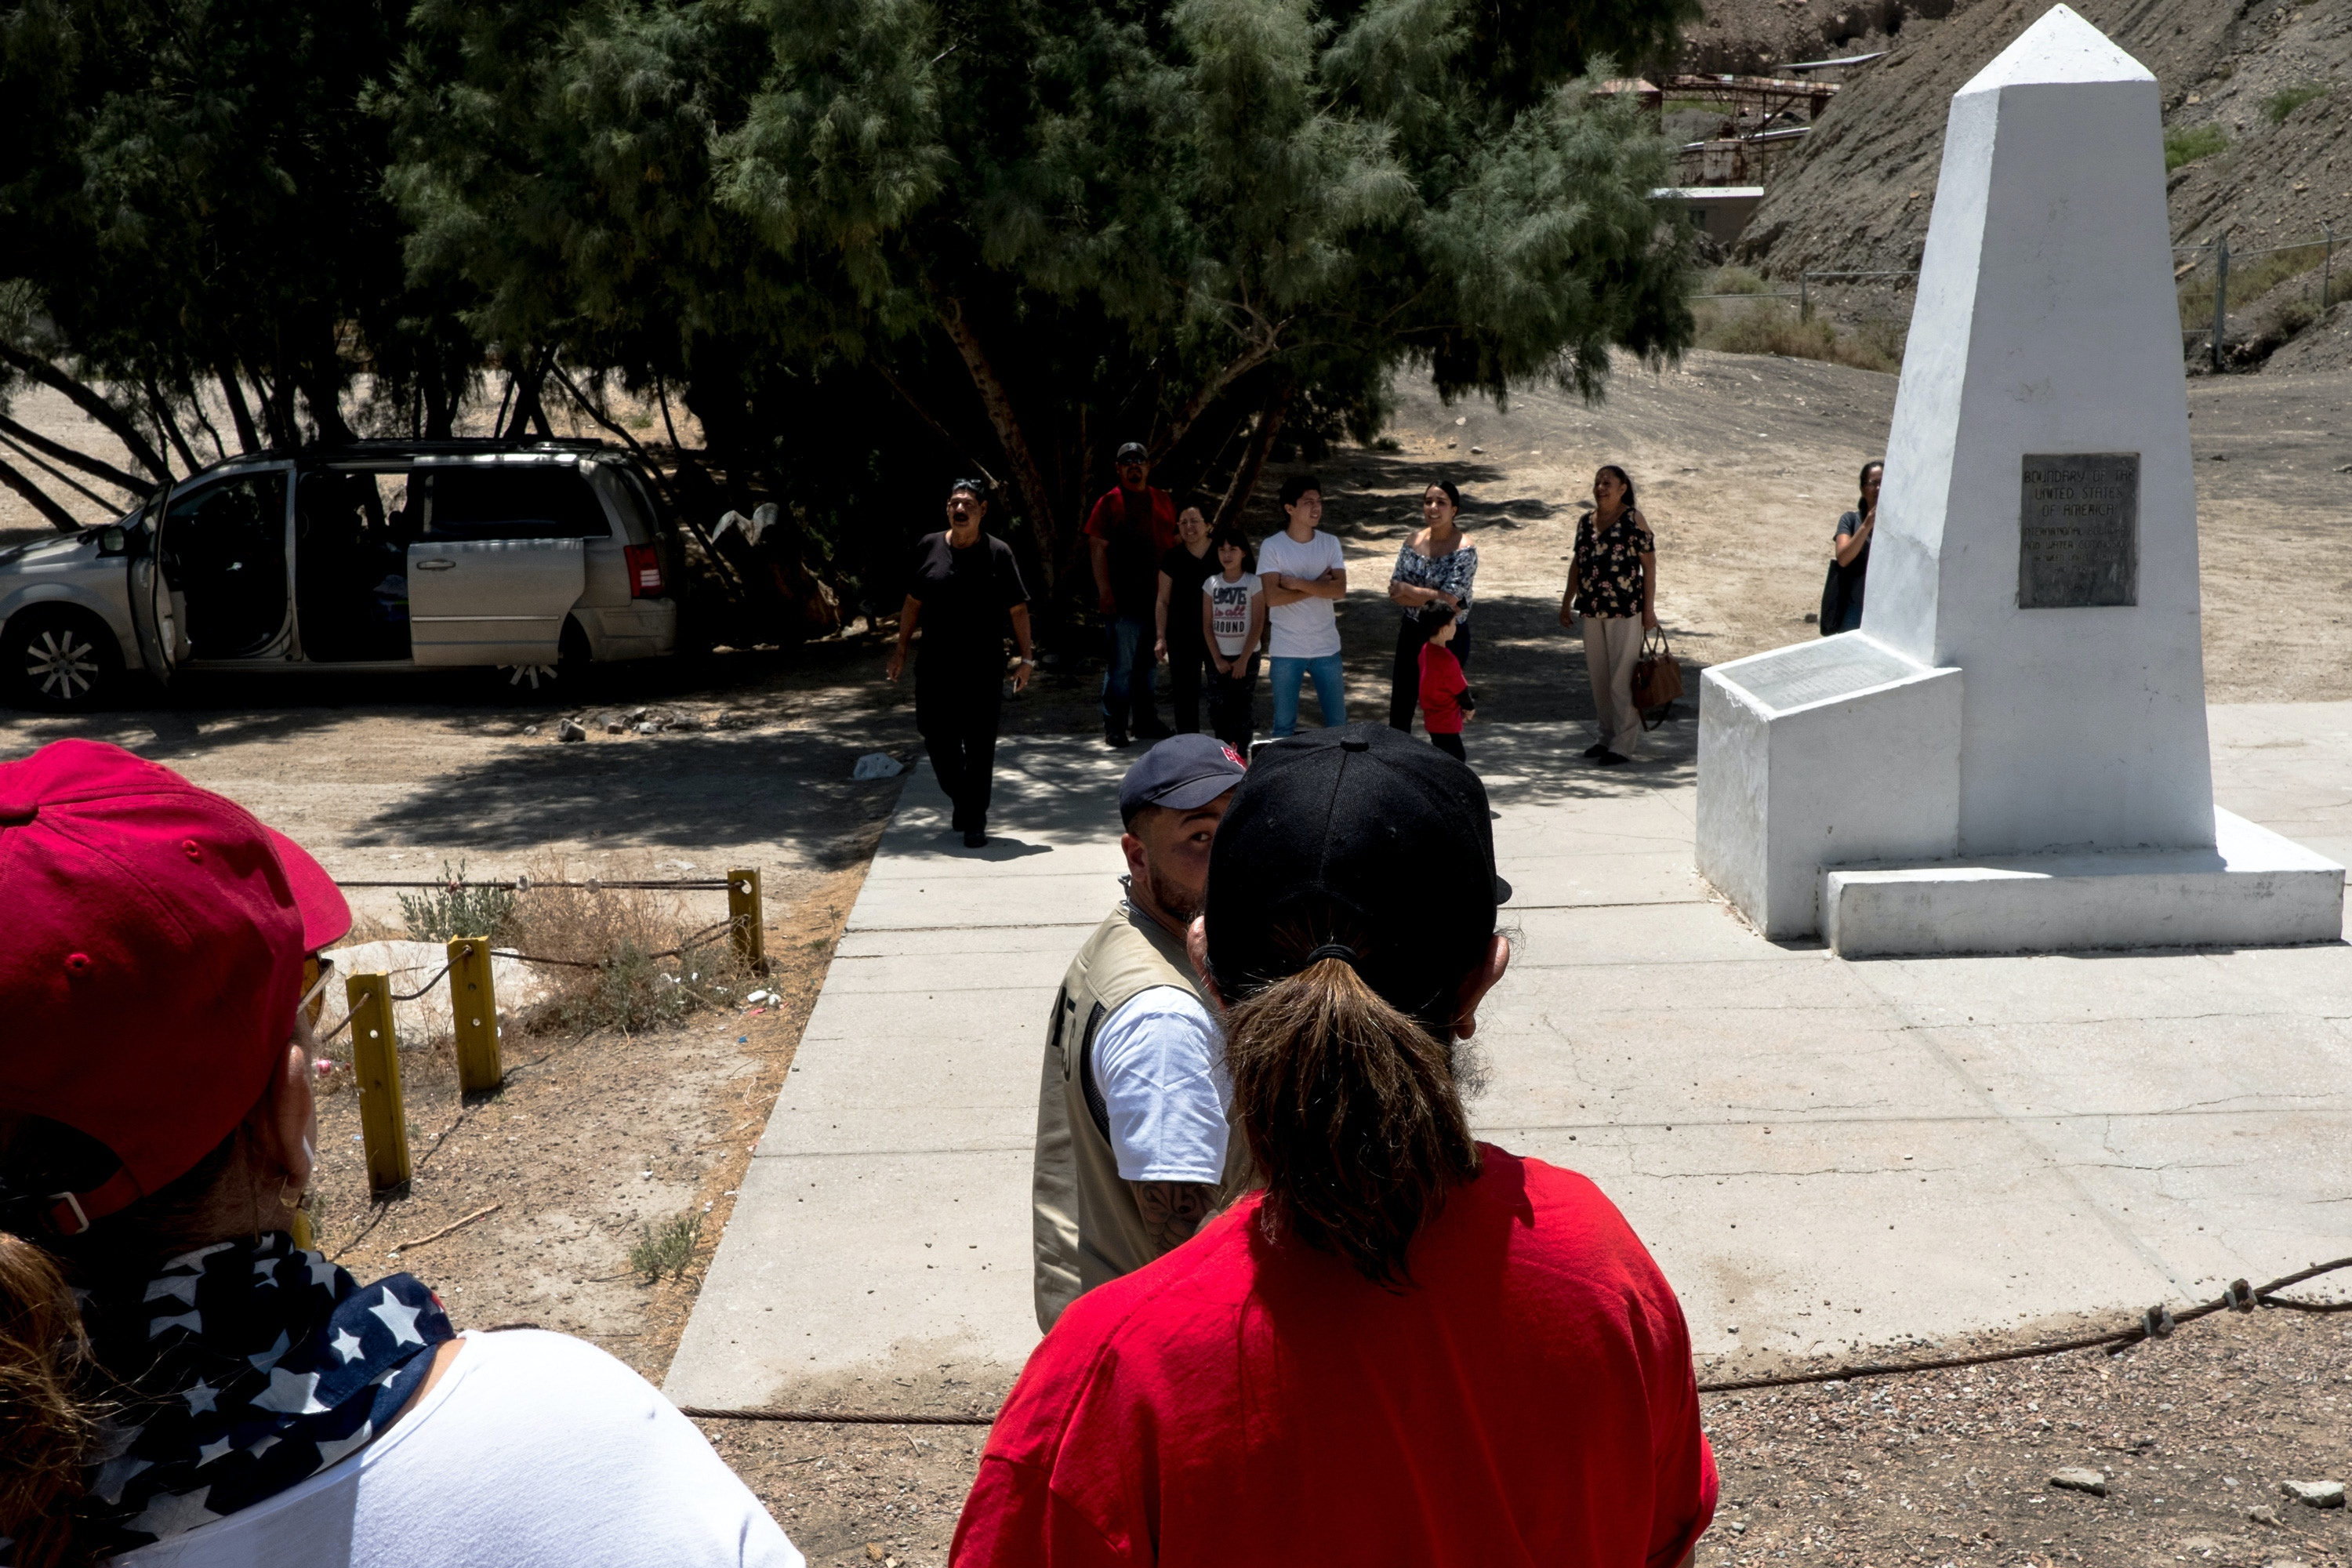 Anthony Agüero glances back at Jennifer Phelps, left, and Nancy Esquivel of El Paso, right, as he heads over to speak to Mexican nationals at Monument One along the U.S.-México border on the outskirts of Sunland Park, New Mexico, Saturday, May 11, 2019. (Joel Angel Juárez for The Intercept)